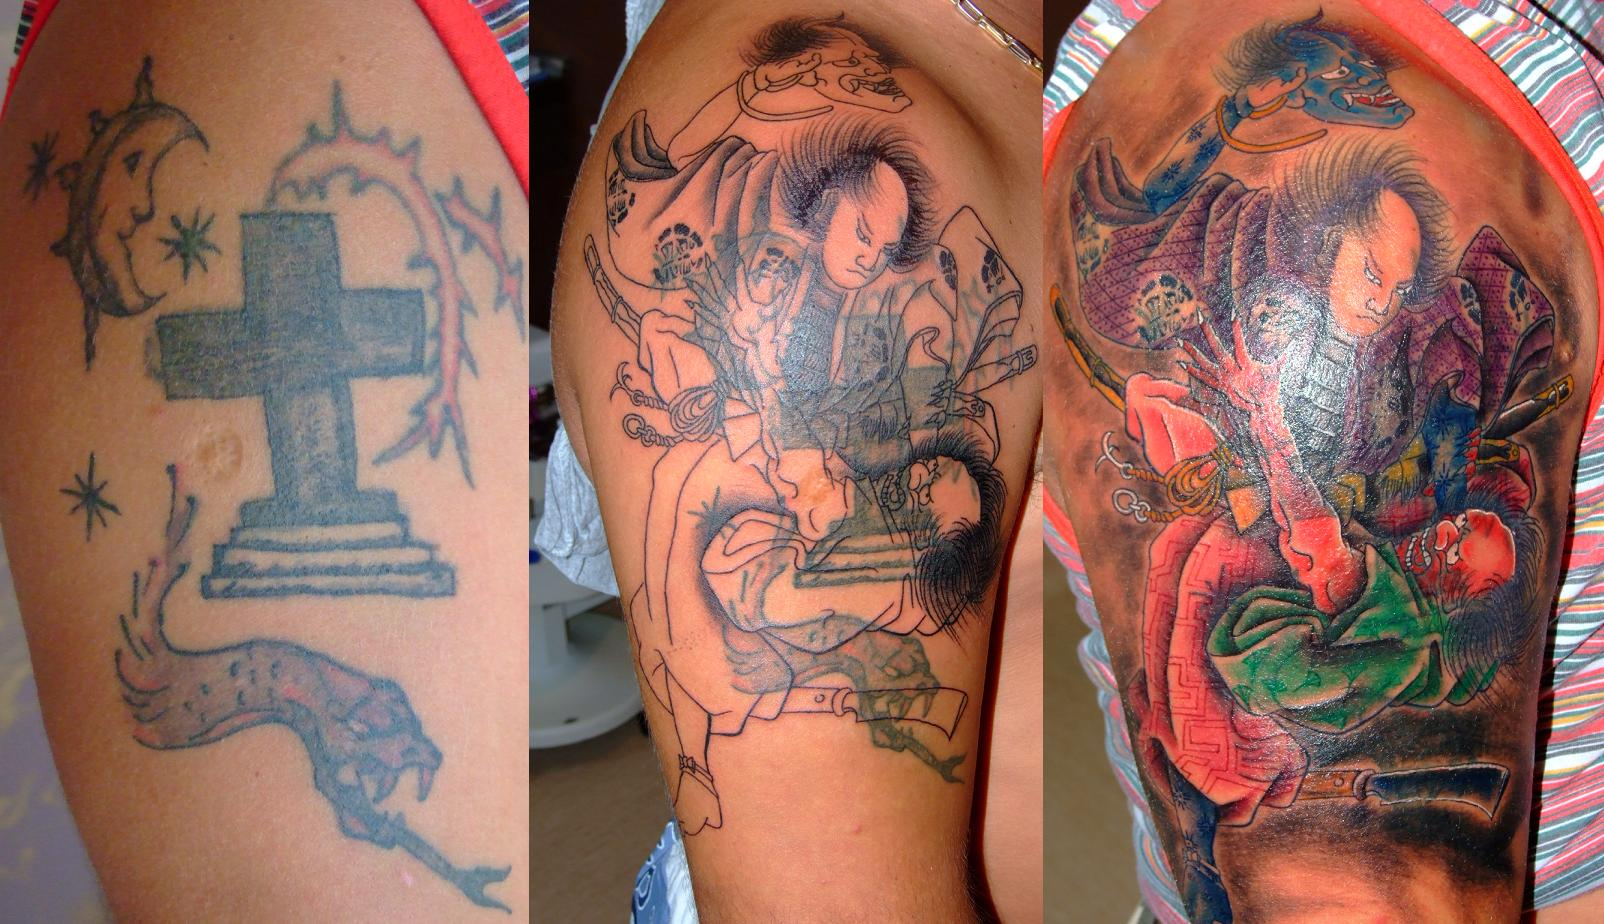 Cover Up Tattoos Tattoo Ideas for proportions 1604 X 924